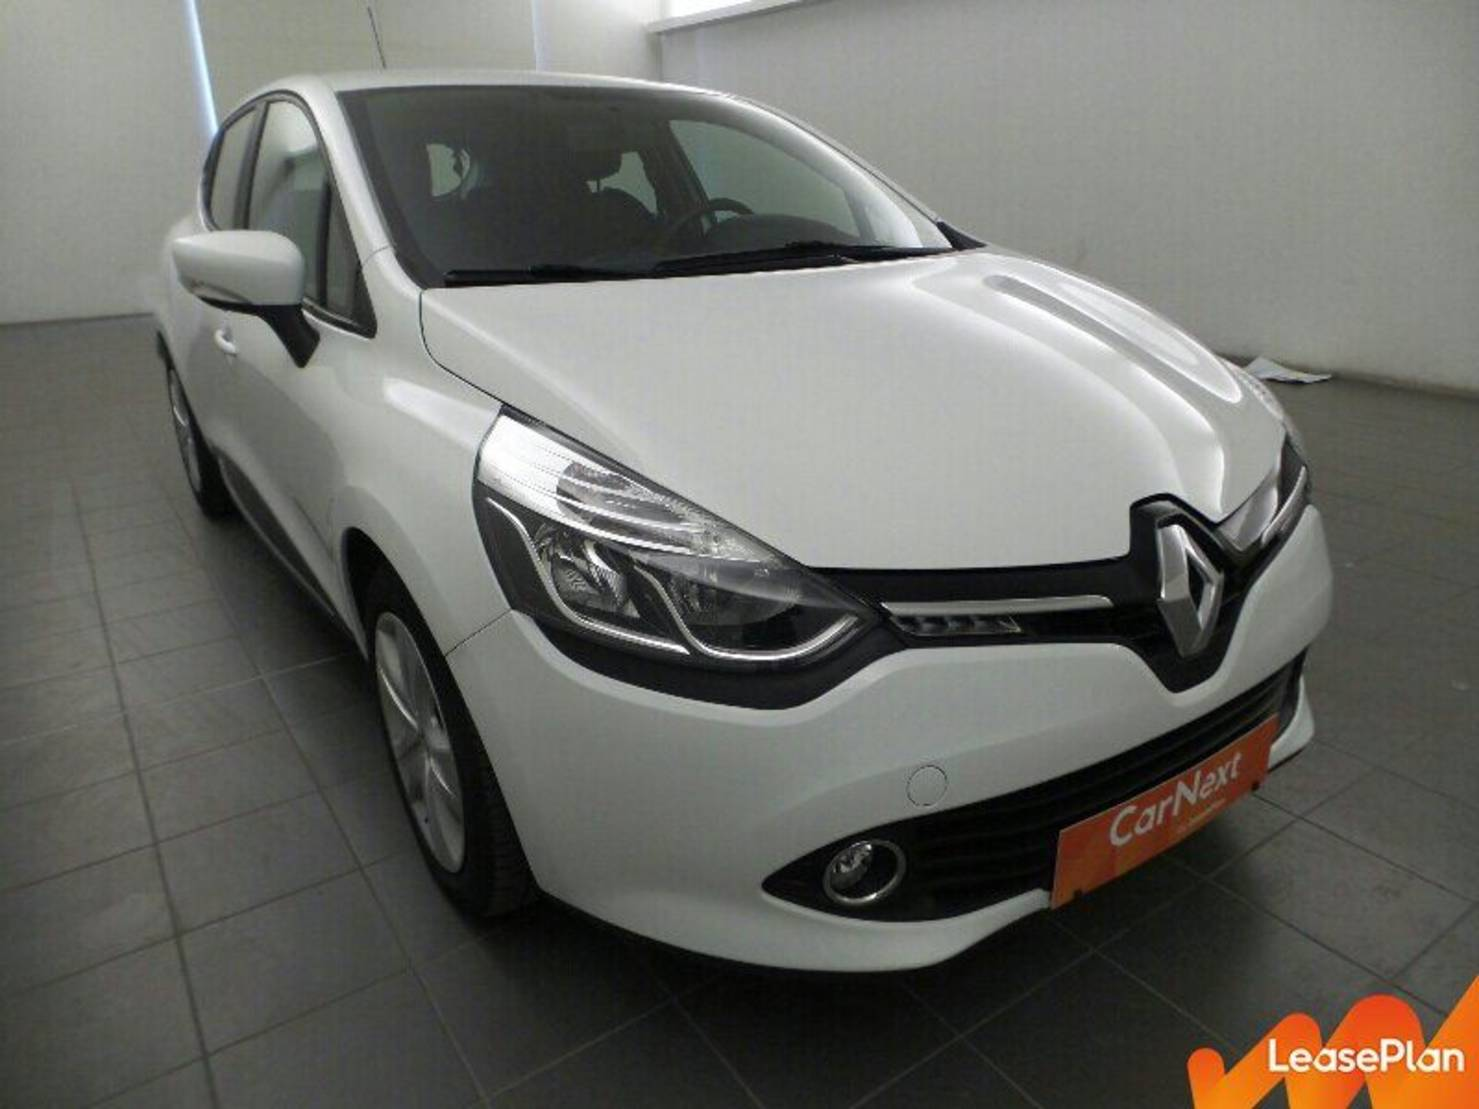 Renault Clio IV dCi 90 BUSINESS ENERGY 82g detail2